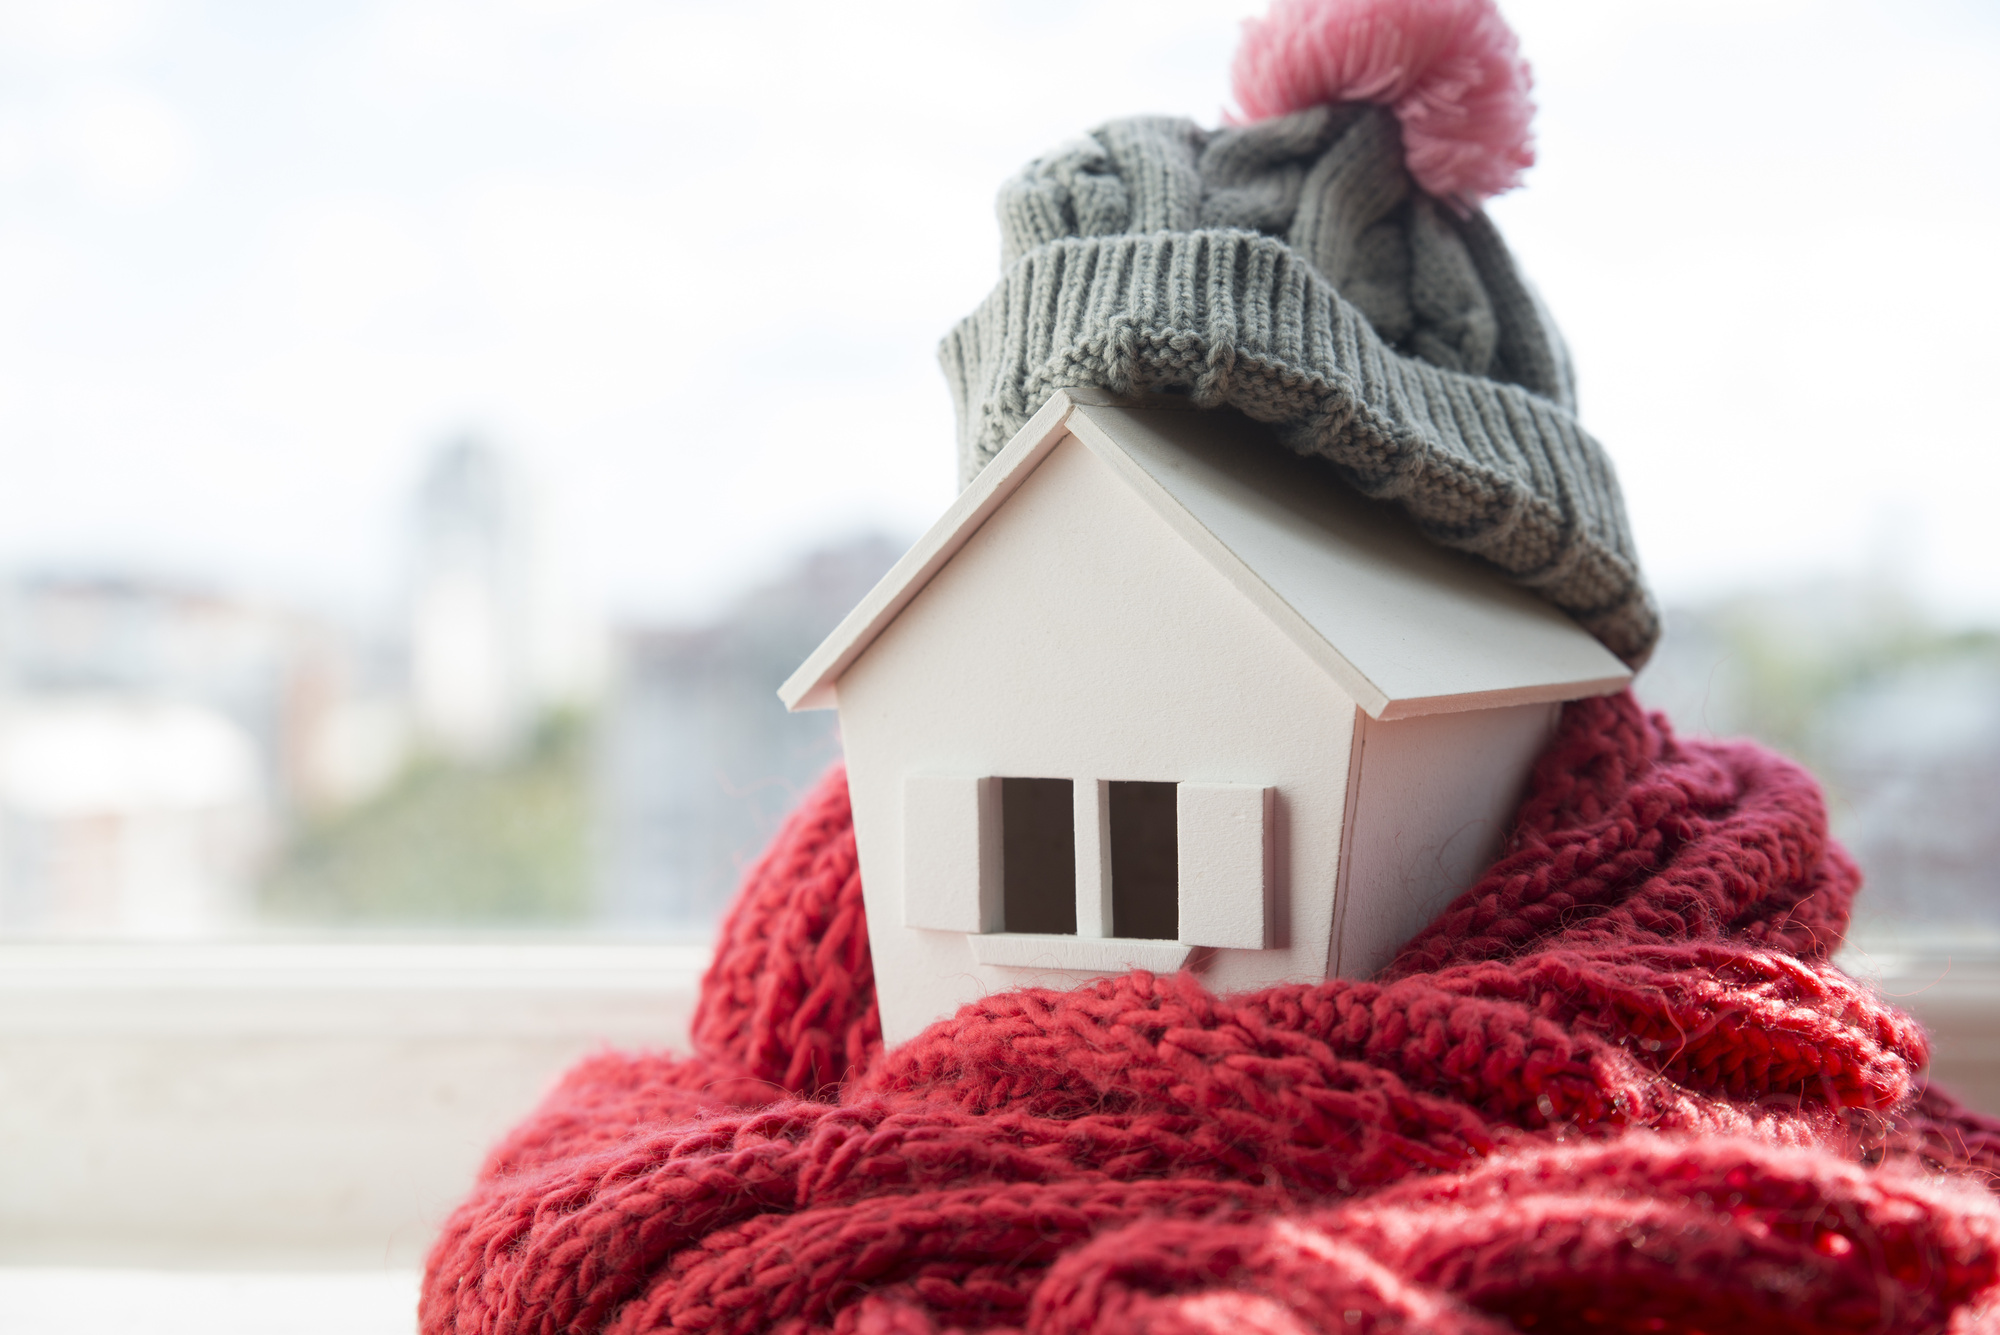 house in winter – heating system concept and cold snowy weather with model of a house wearing a knitted cap